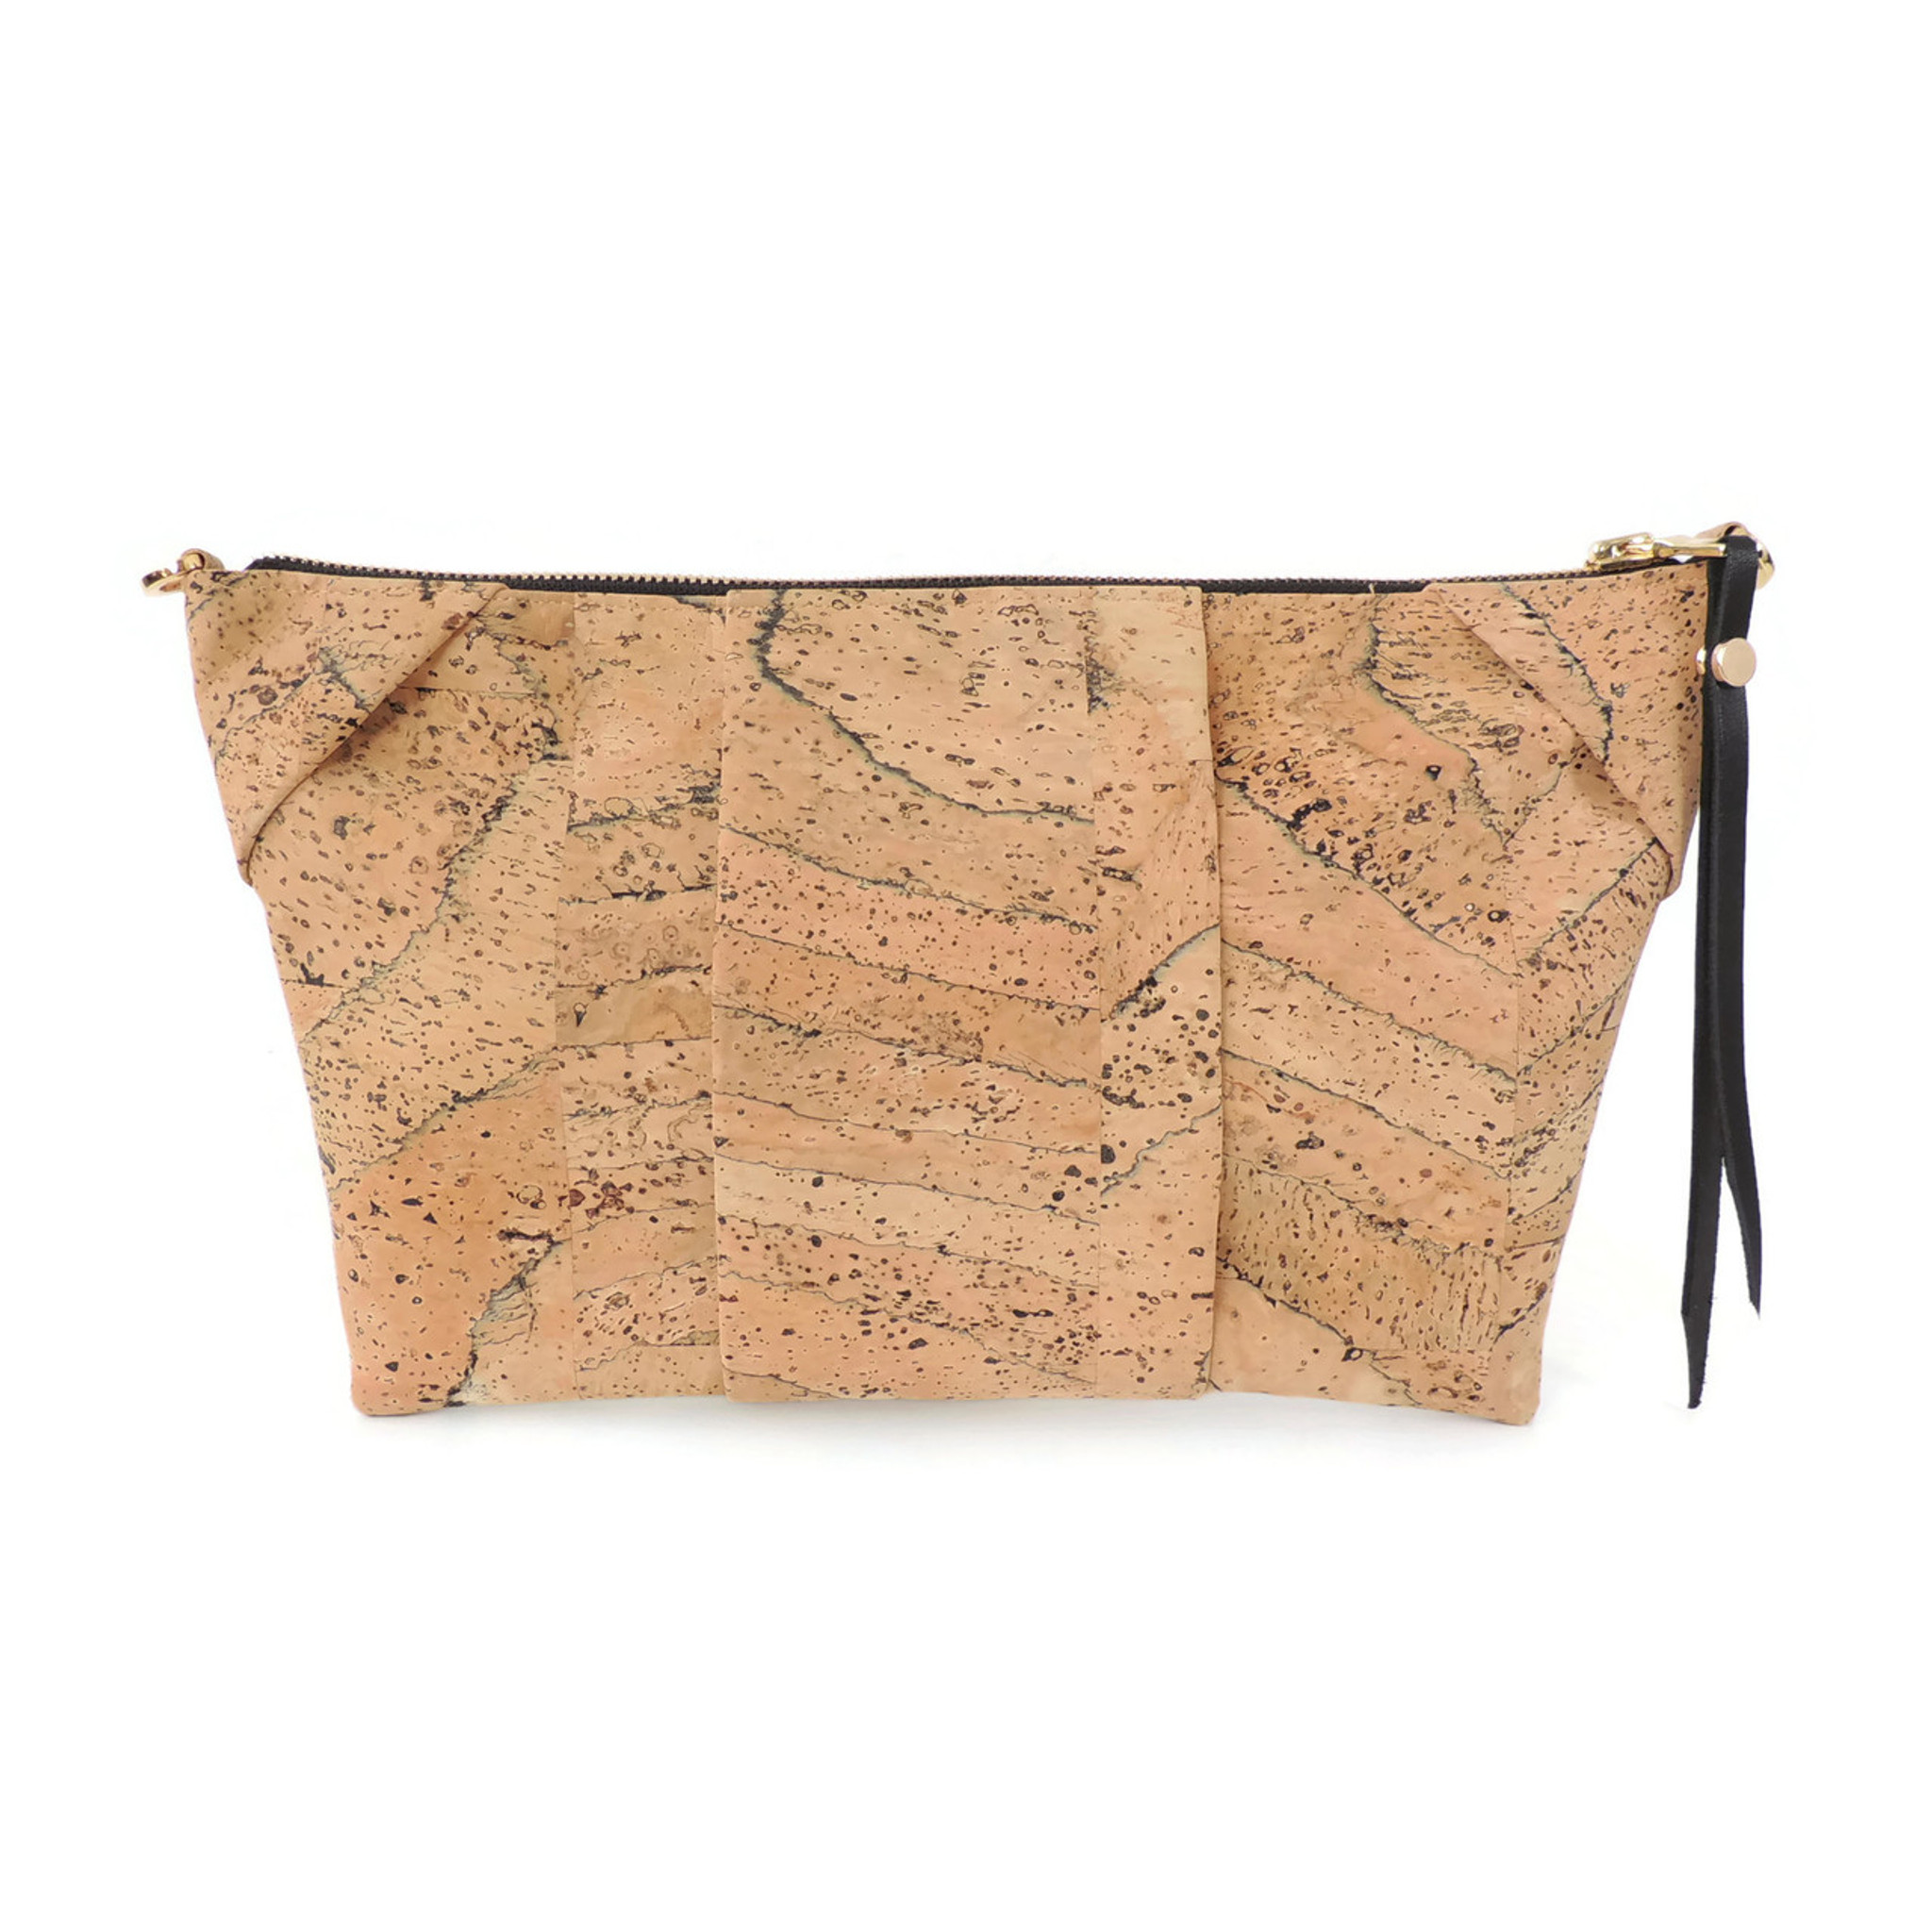 Pleated Clutch in Marble Cork